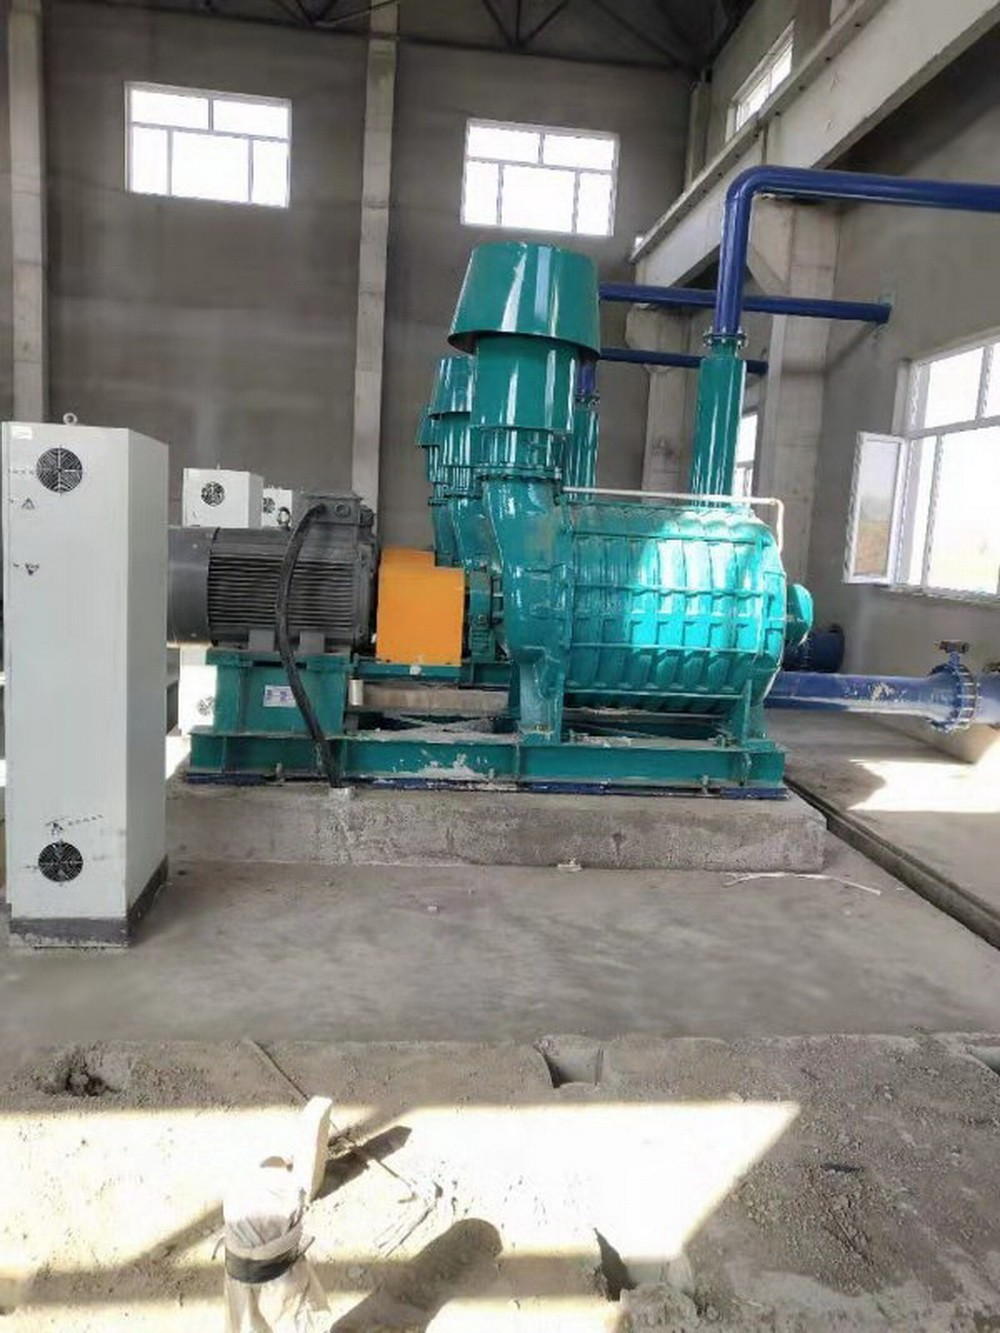 Field application of multistage centrifugal blower (turbo blower)